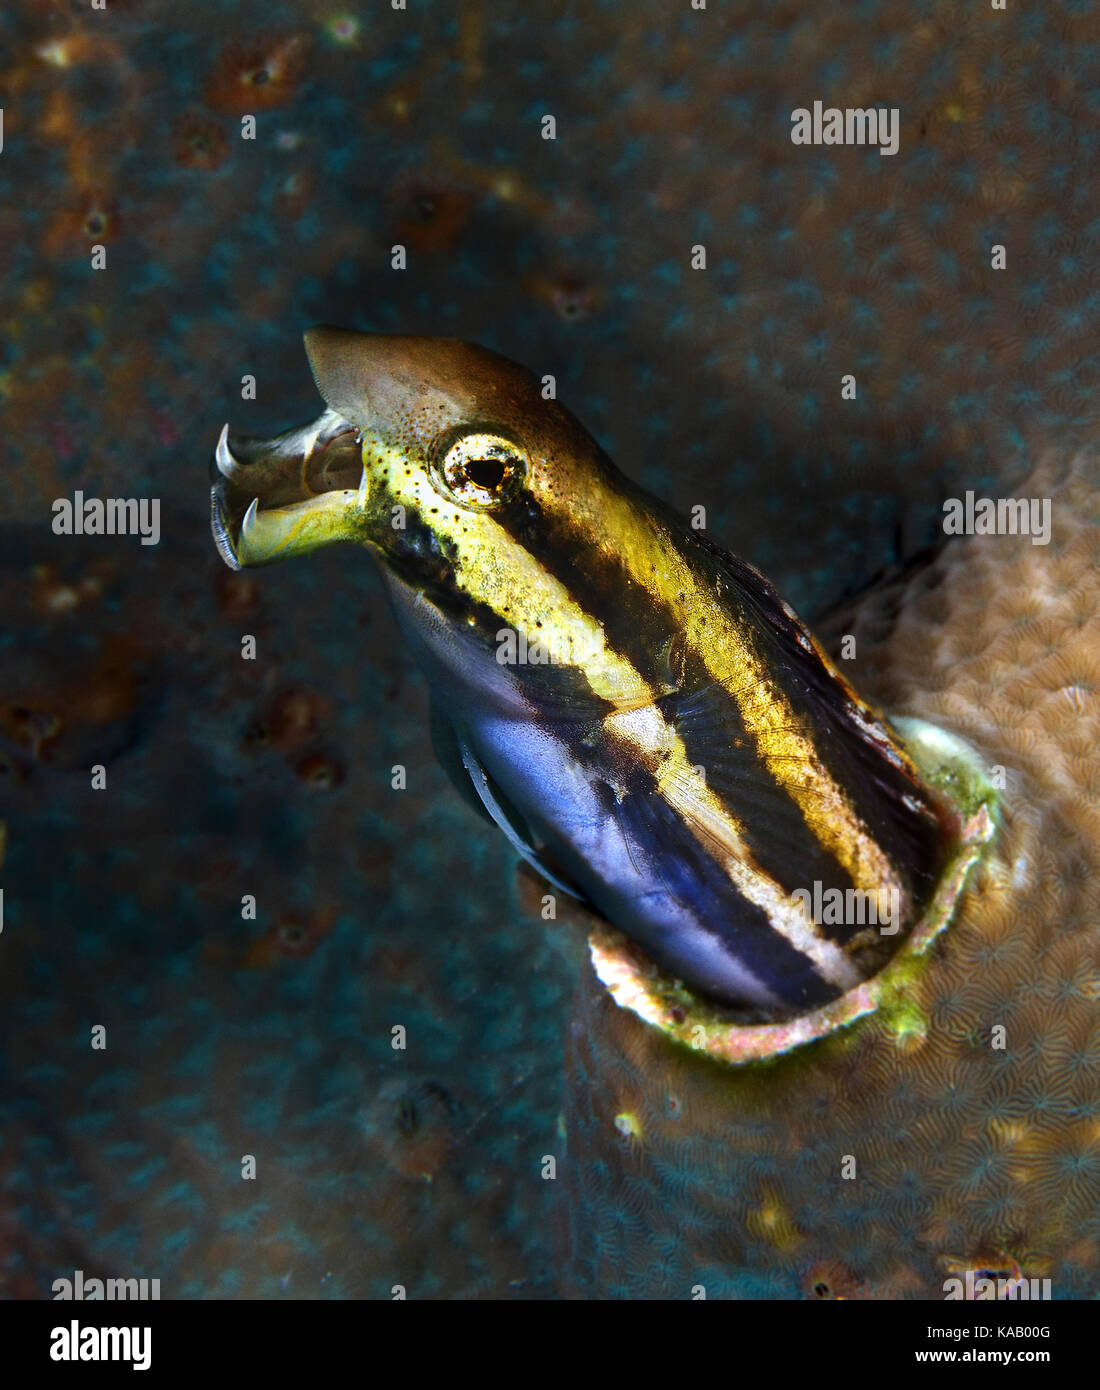 Striped poison-fang blenny, Meiacanthus grammistes. In an aggressive posture. - Stock Image